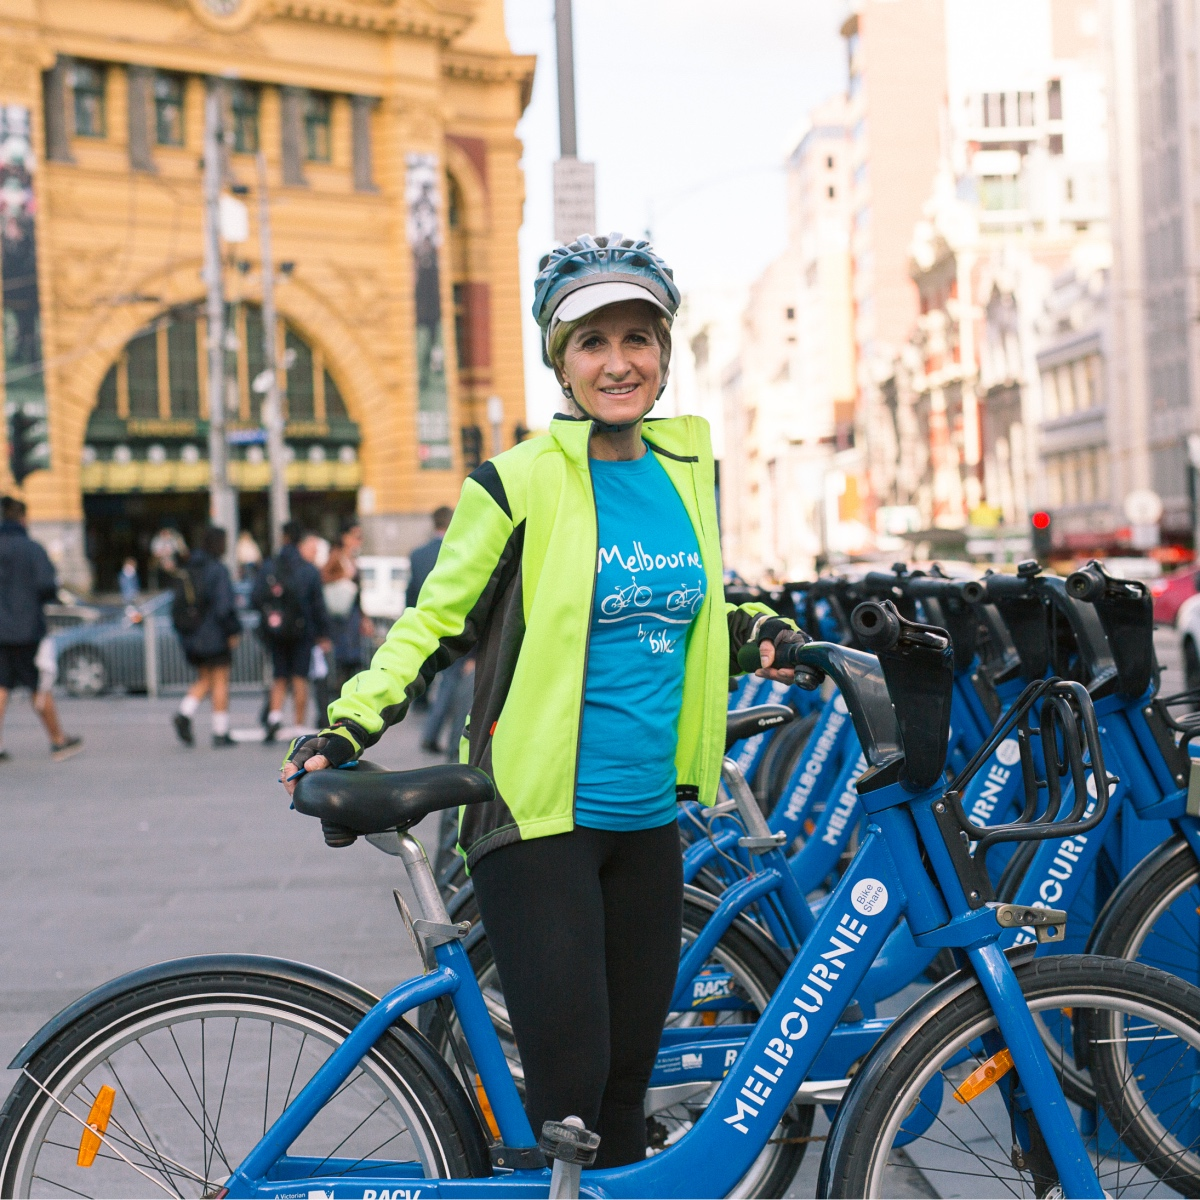 Melbourne By Bike